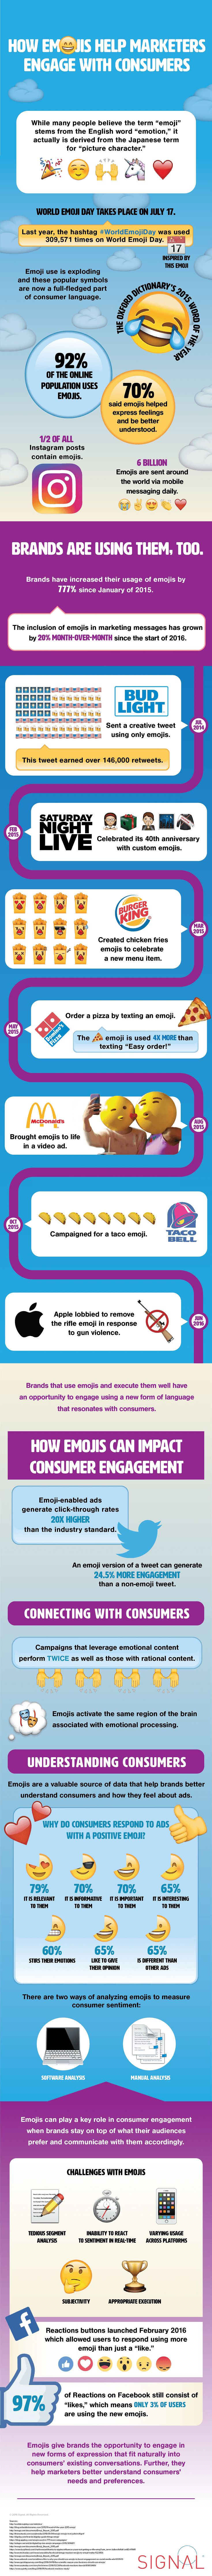 How Emojis Help Marketers Engage With Consumers - infographic | http://www.digitalinformationworld.com/